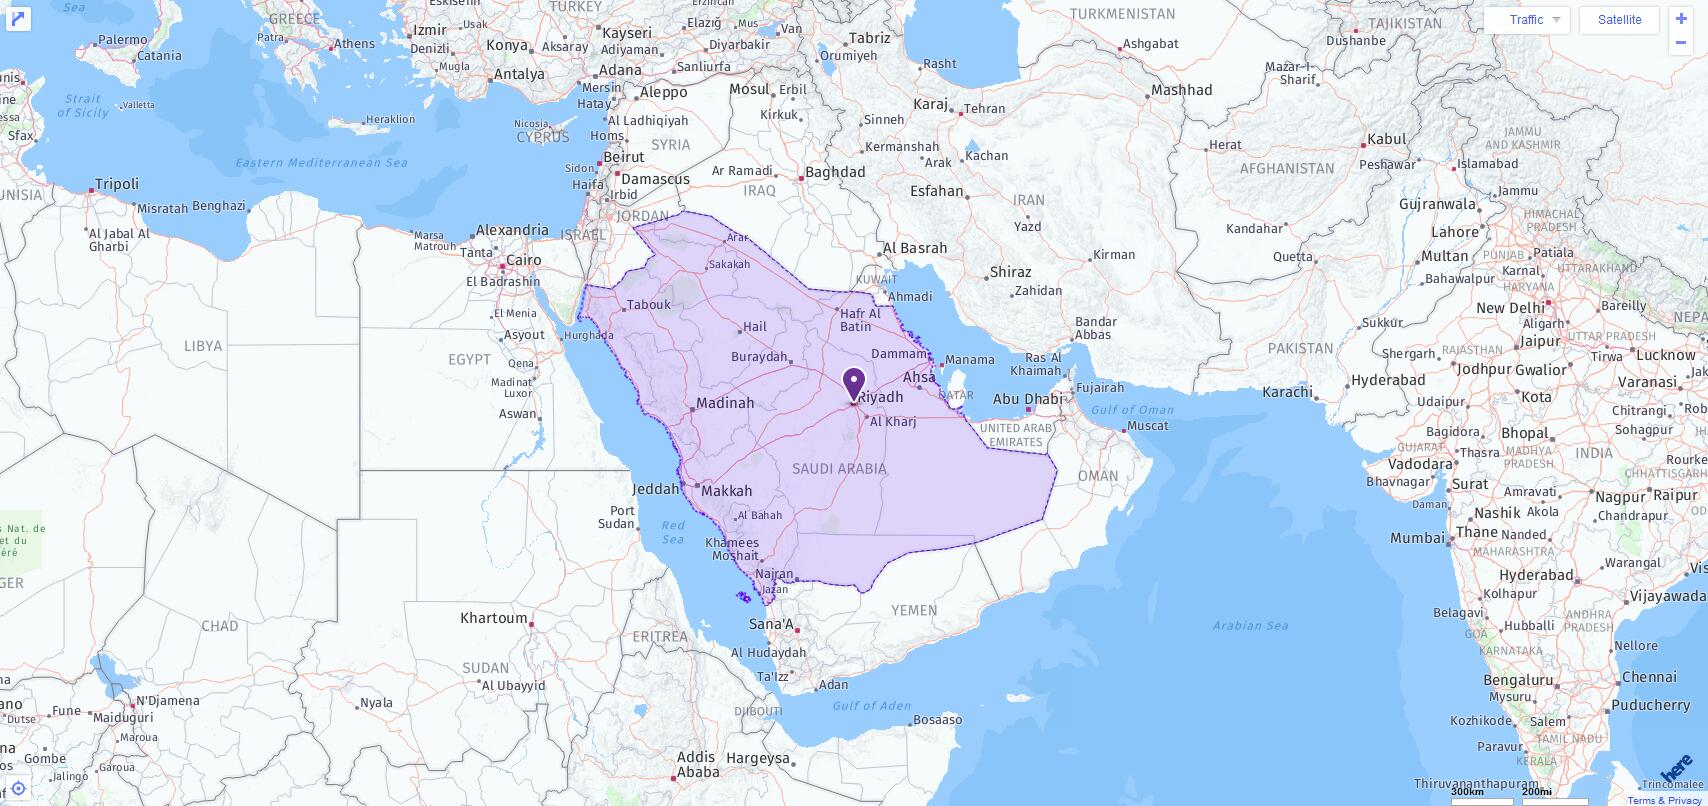 ACT Test Centers and Dates in Saudi Arabia